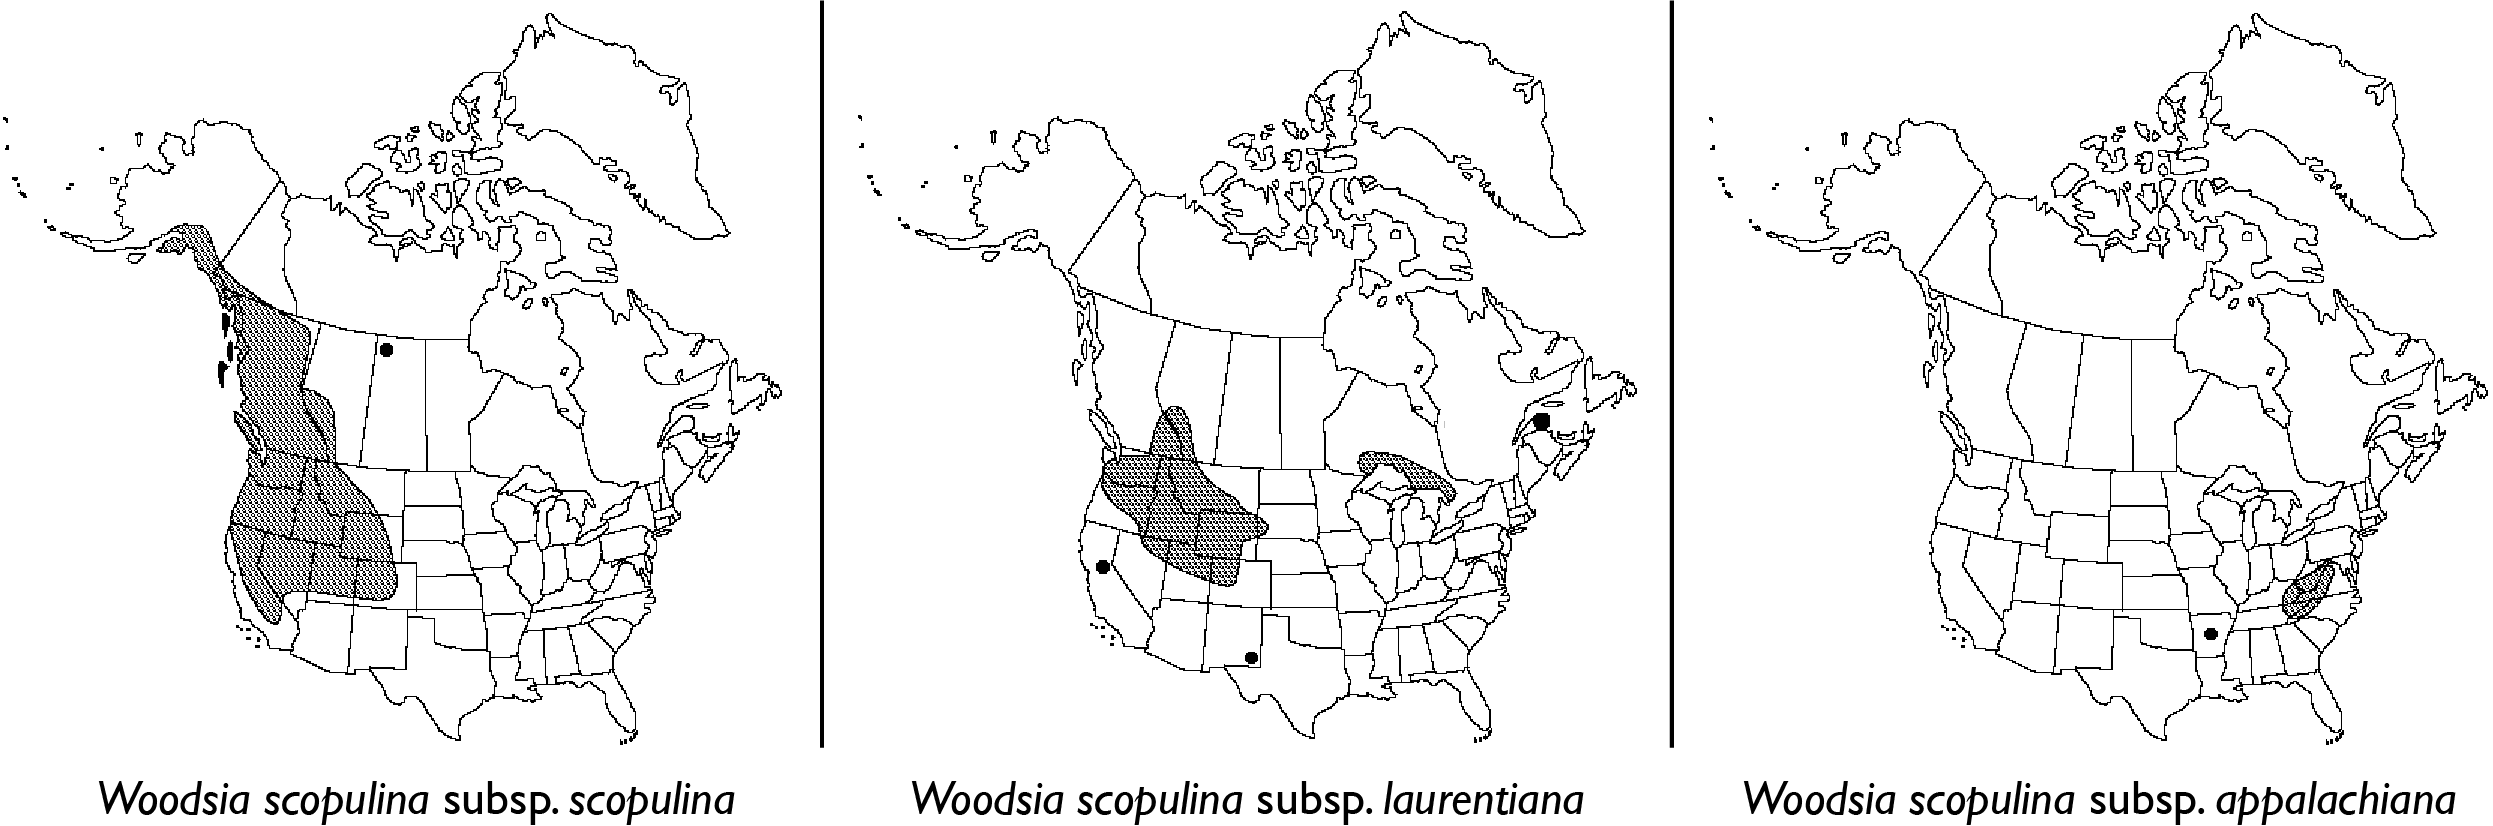 Geographic distribution of the  Woodsia scopulina  complex. putative parents (left, right) of the laurentian shield tetraploid (4x),  Woodsia scopulina  subsp.  laurentiana  (center). Modified from  efloras.org .